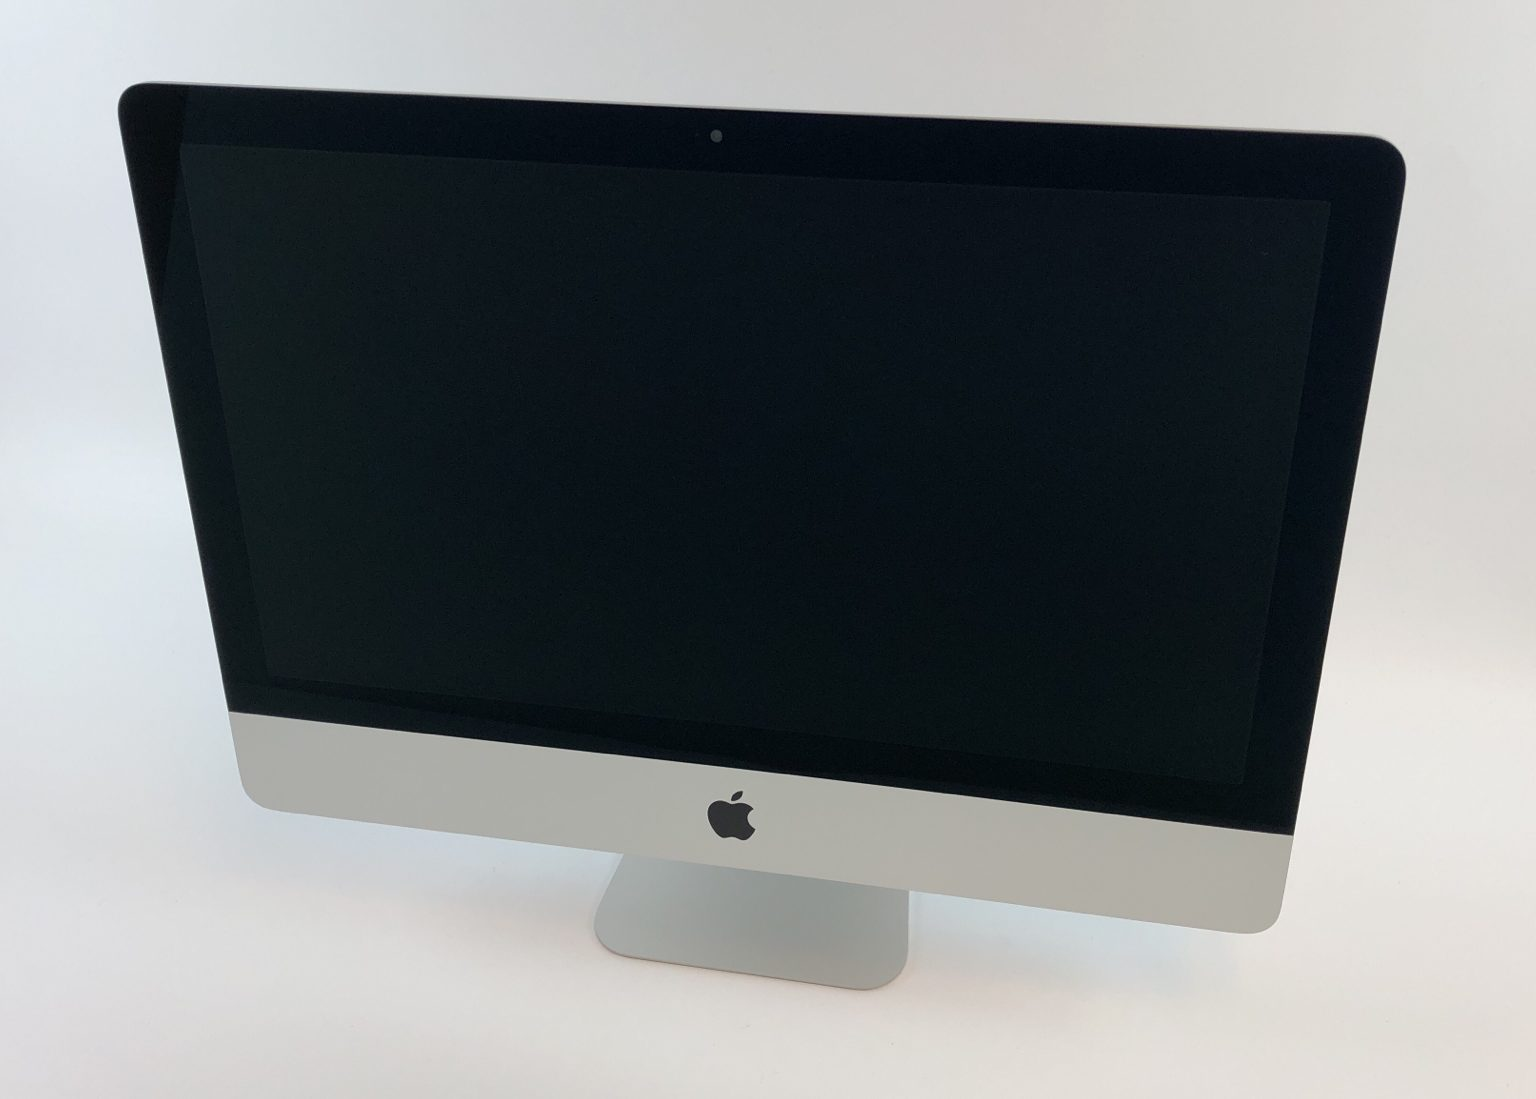 "iMac 21.5"" Late 2015 (Intel Core i5 1.6 GHz 8 GB RAM 1 TB HDD), Intel Core i5 1.6 GHz, 8 GB RAM, 1 TB HDD, Afbeelding 1"